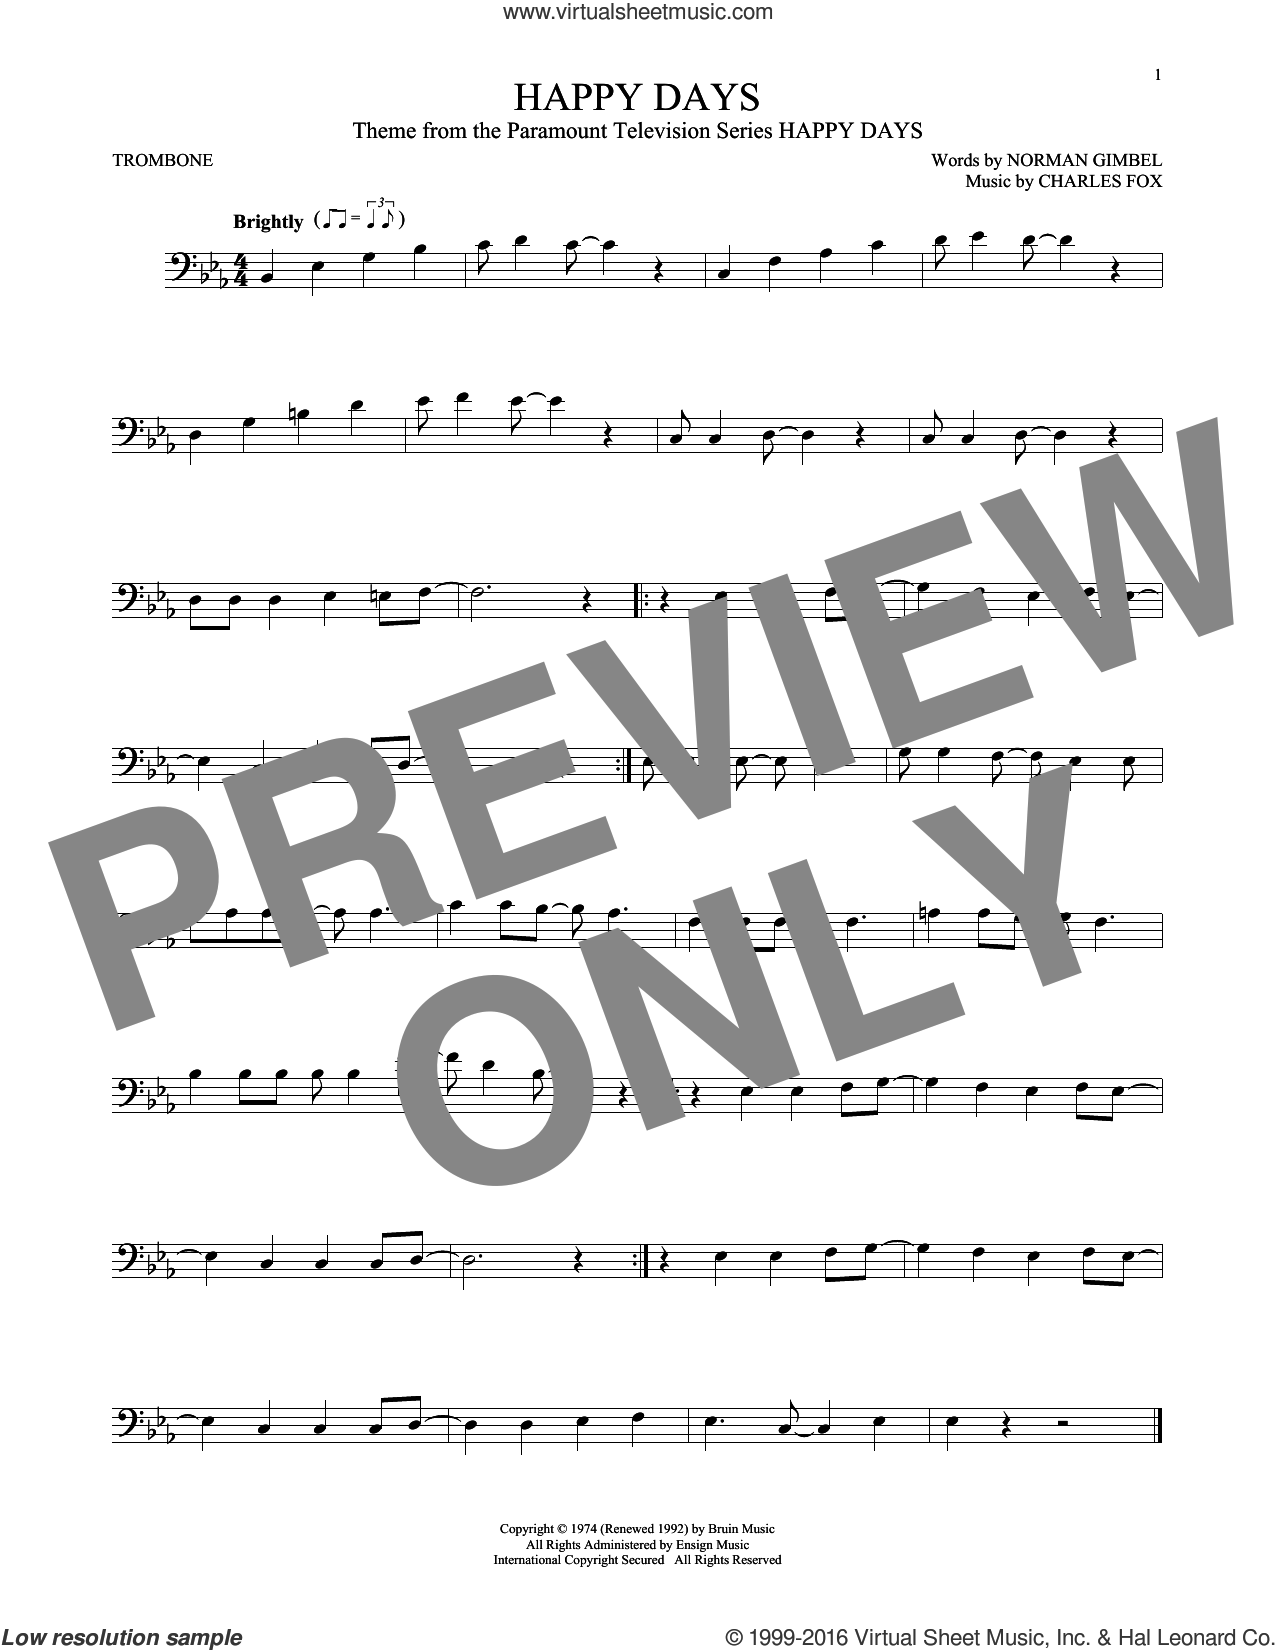 Happy Days sheet music for trombone solo by Pratt and McClain, Charles Fox and Norman Gimbel. Score Image Preview.